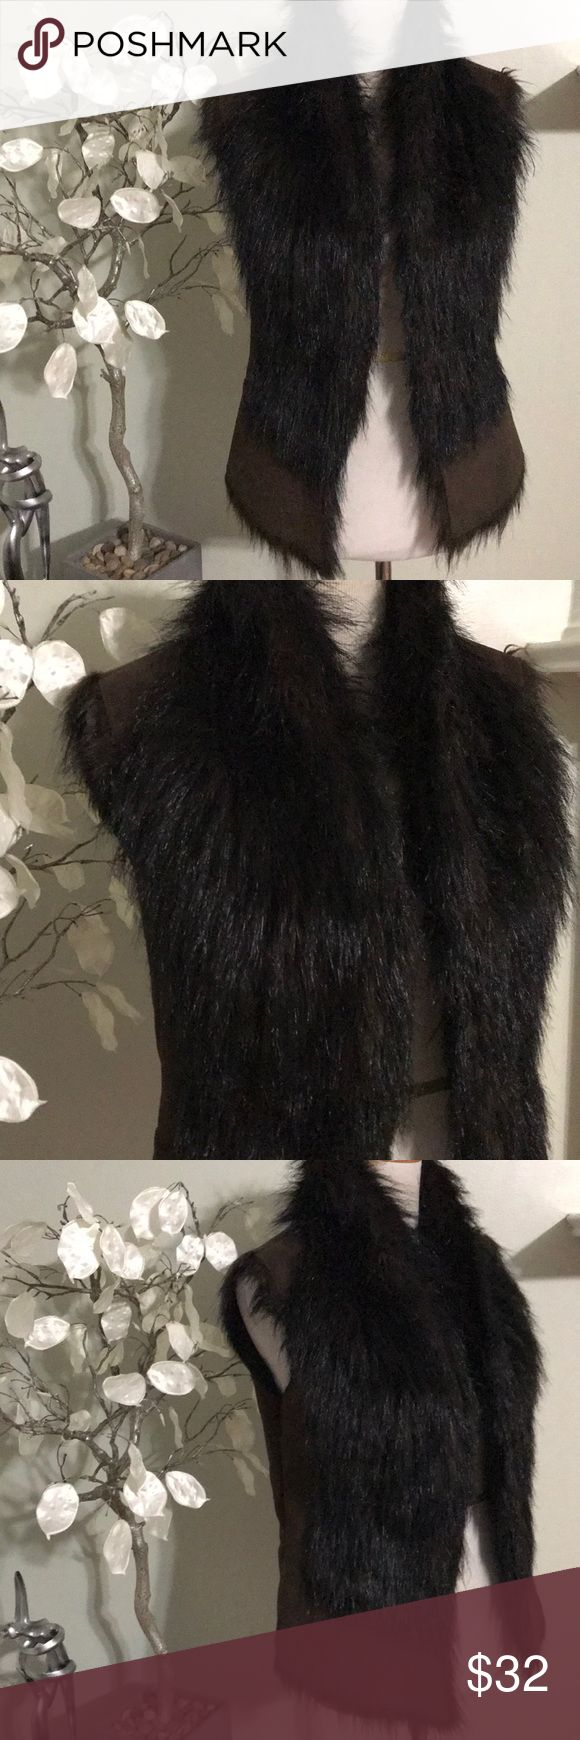 ZARA WINTER VEST Unique and beautiful vest , faux fur, new without tags, 100% polyester, super warm and stylish Zara Jackets & Coats Vests